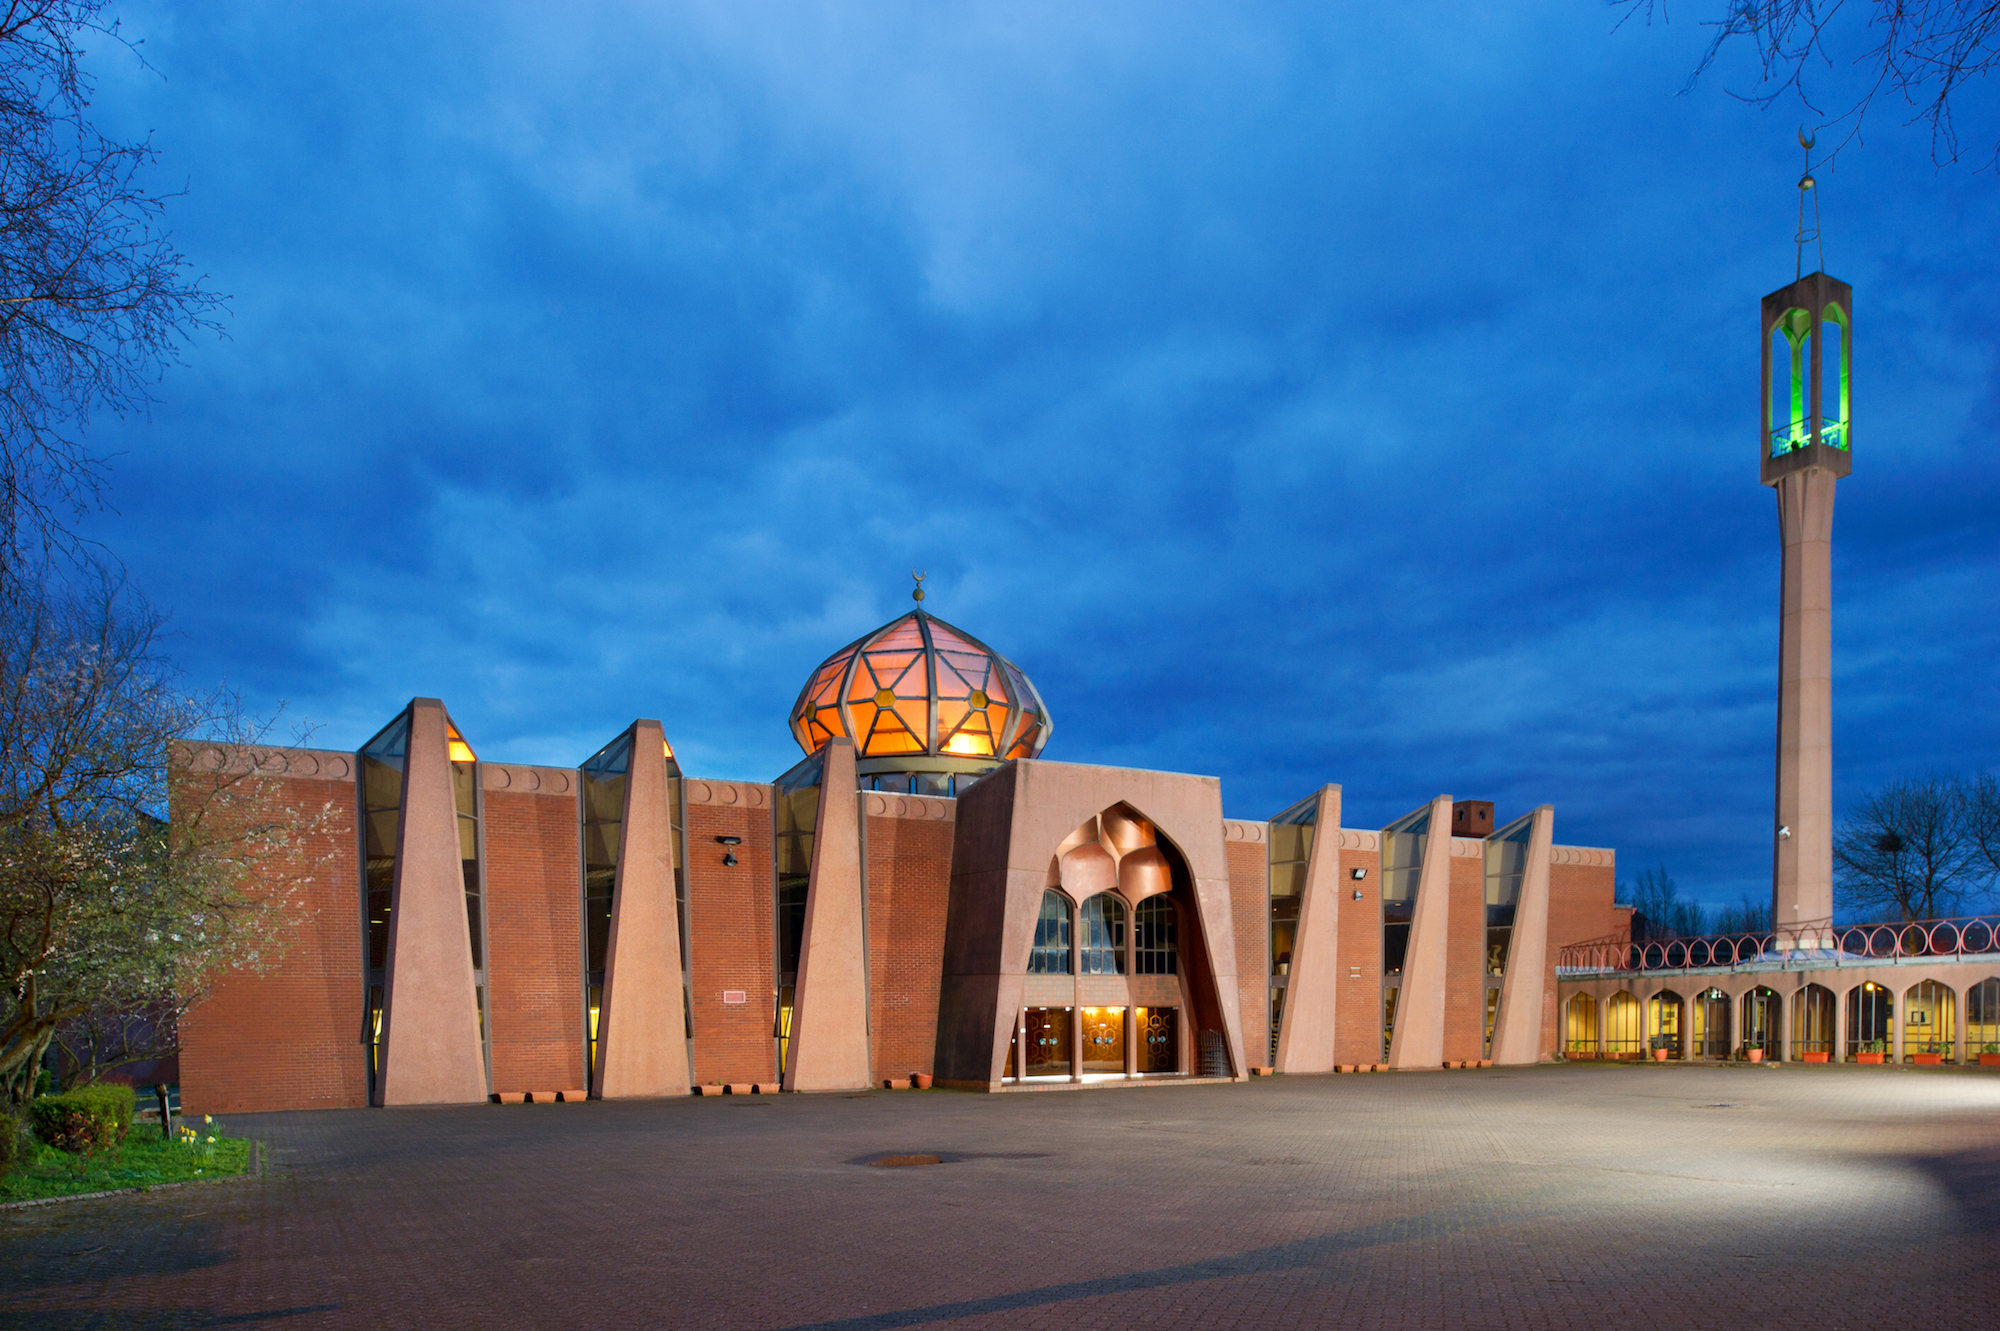 The main entrance of Glasgow Central Mosque,an ambitious interpretation of traditional mosque architecture